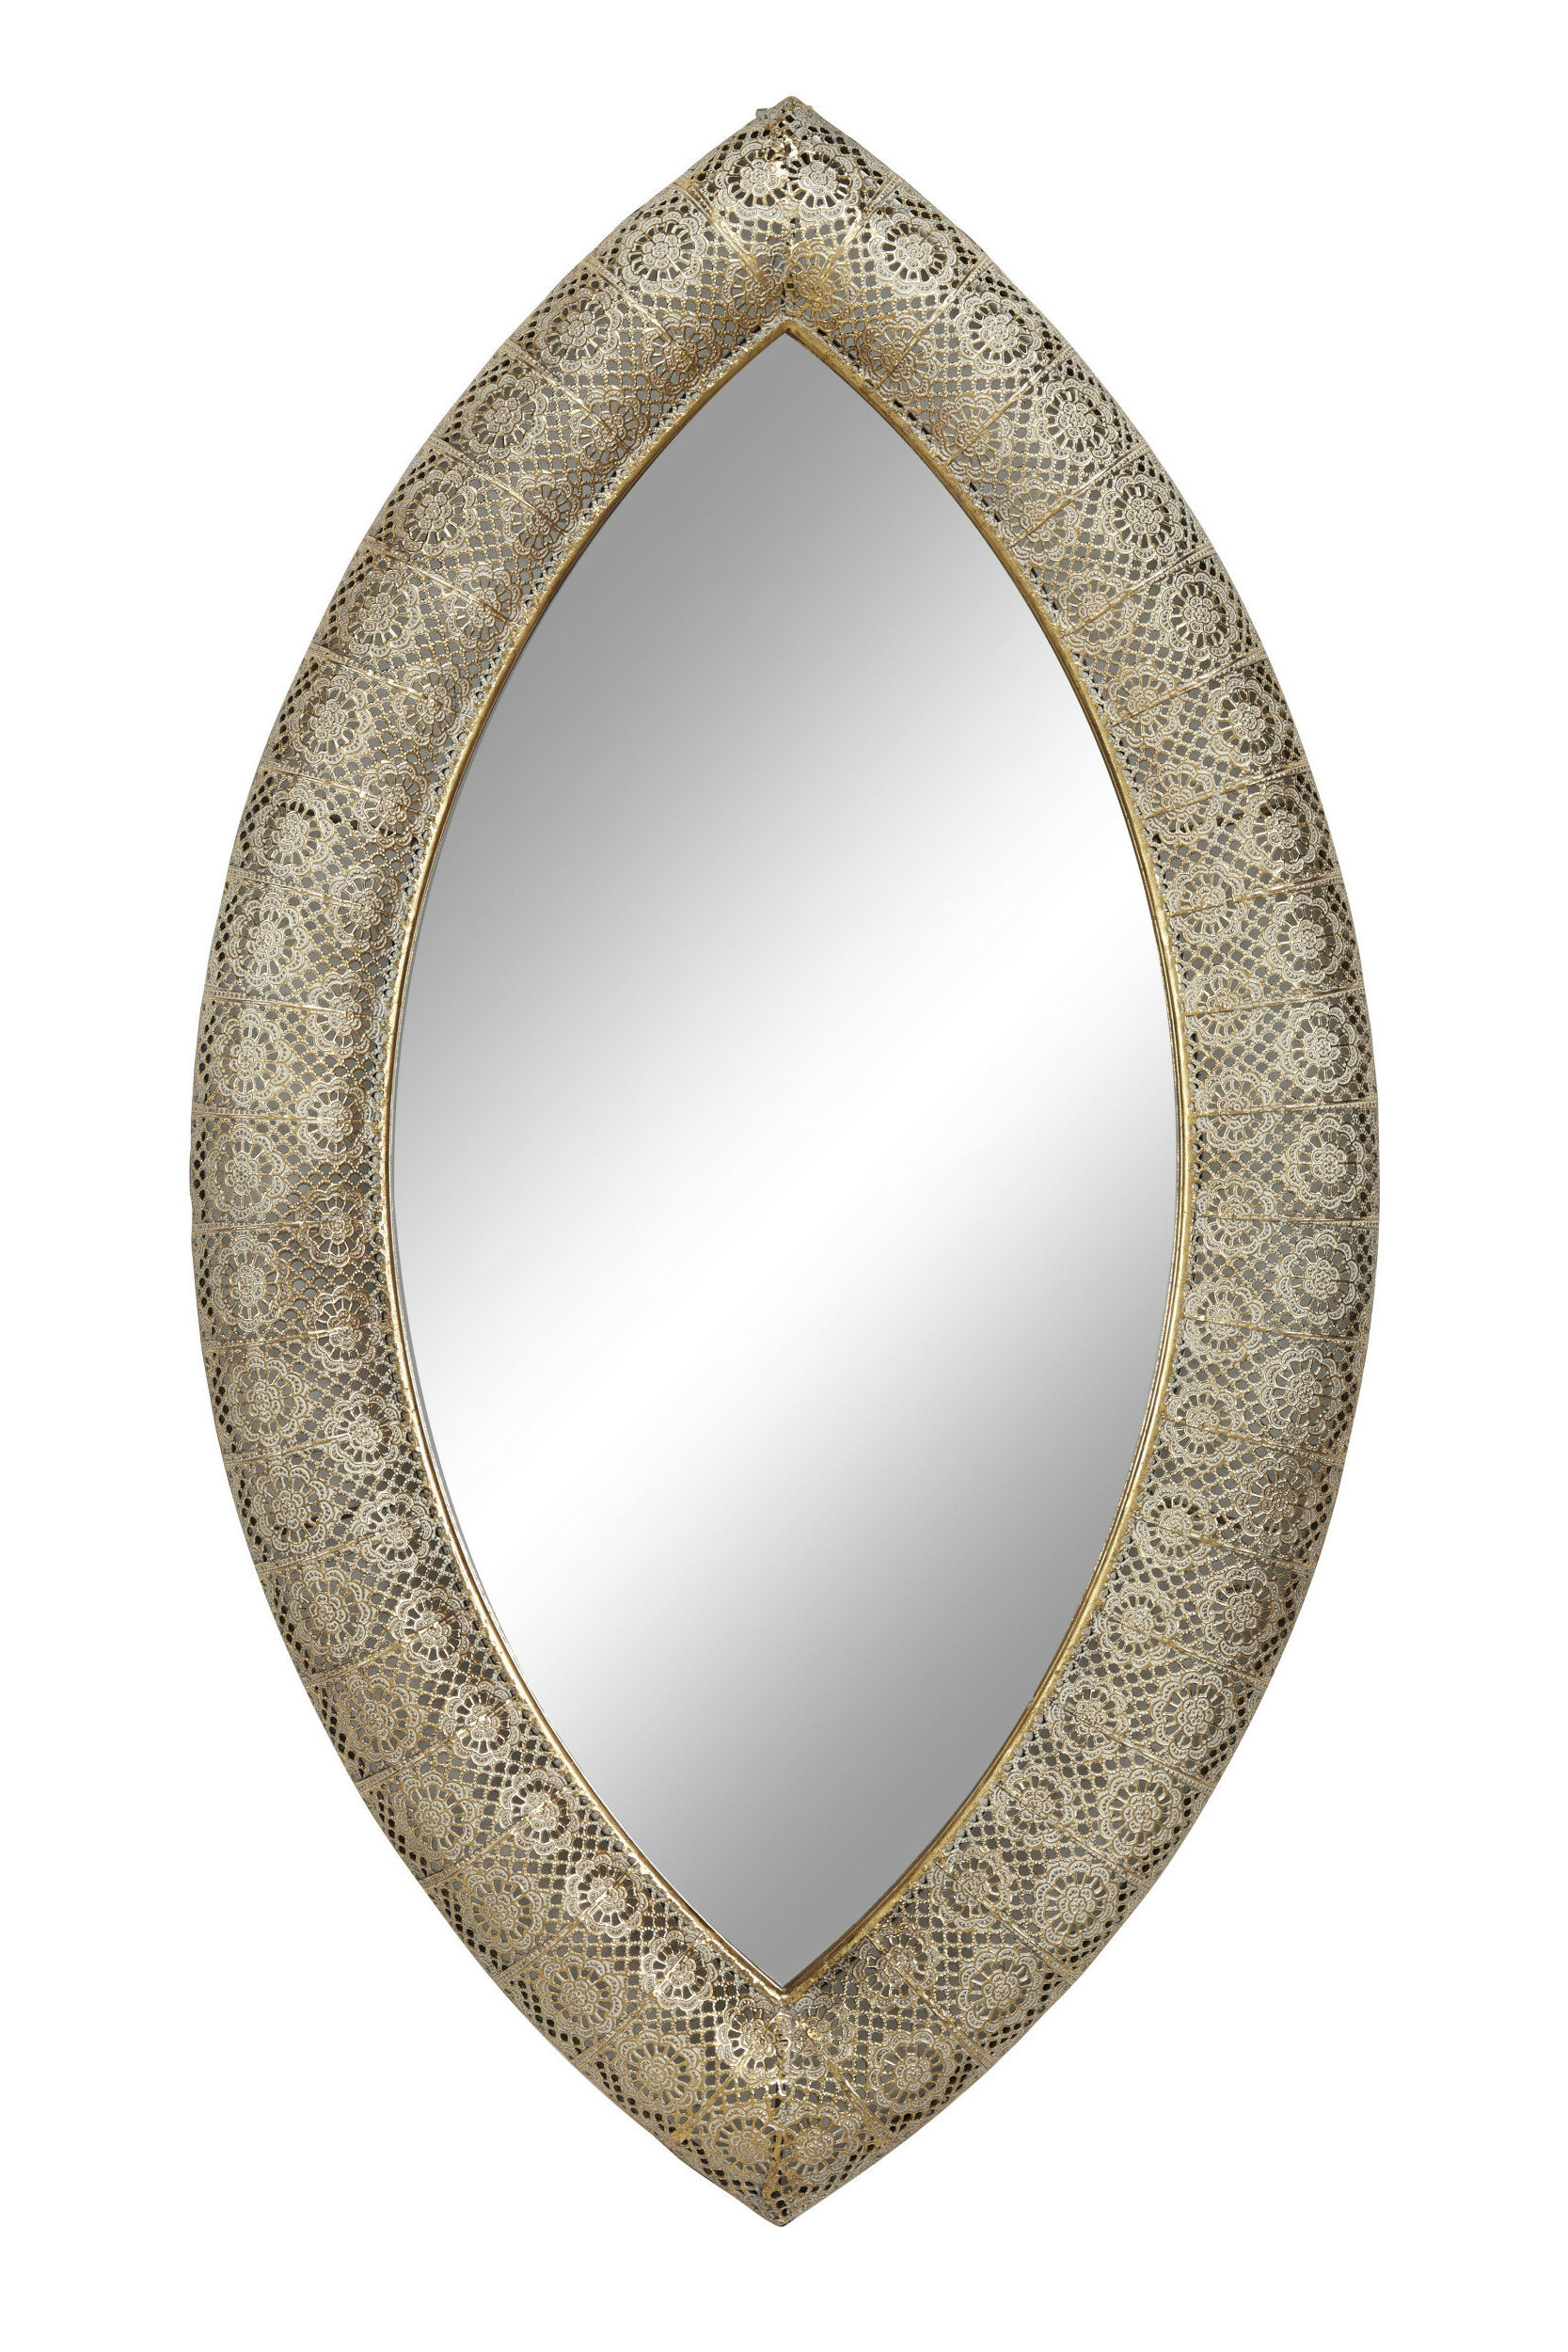 Oakman Metal Pierced Oval Accent Mirror For Most Current Oval Metallic Accent Mirrors (View 5 of 20)